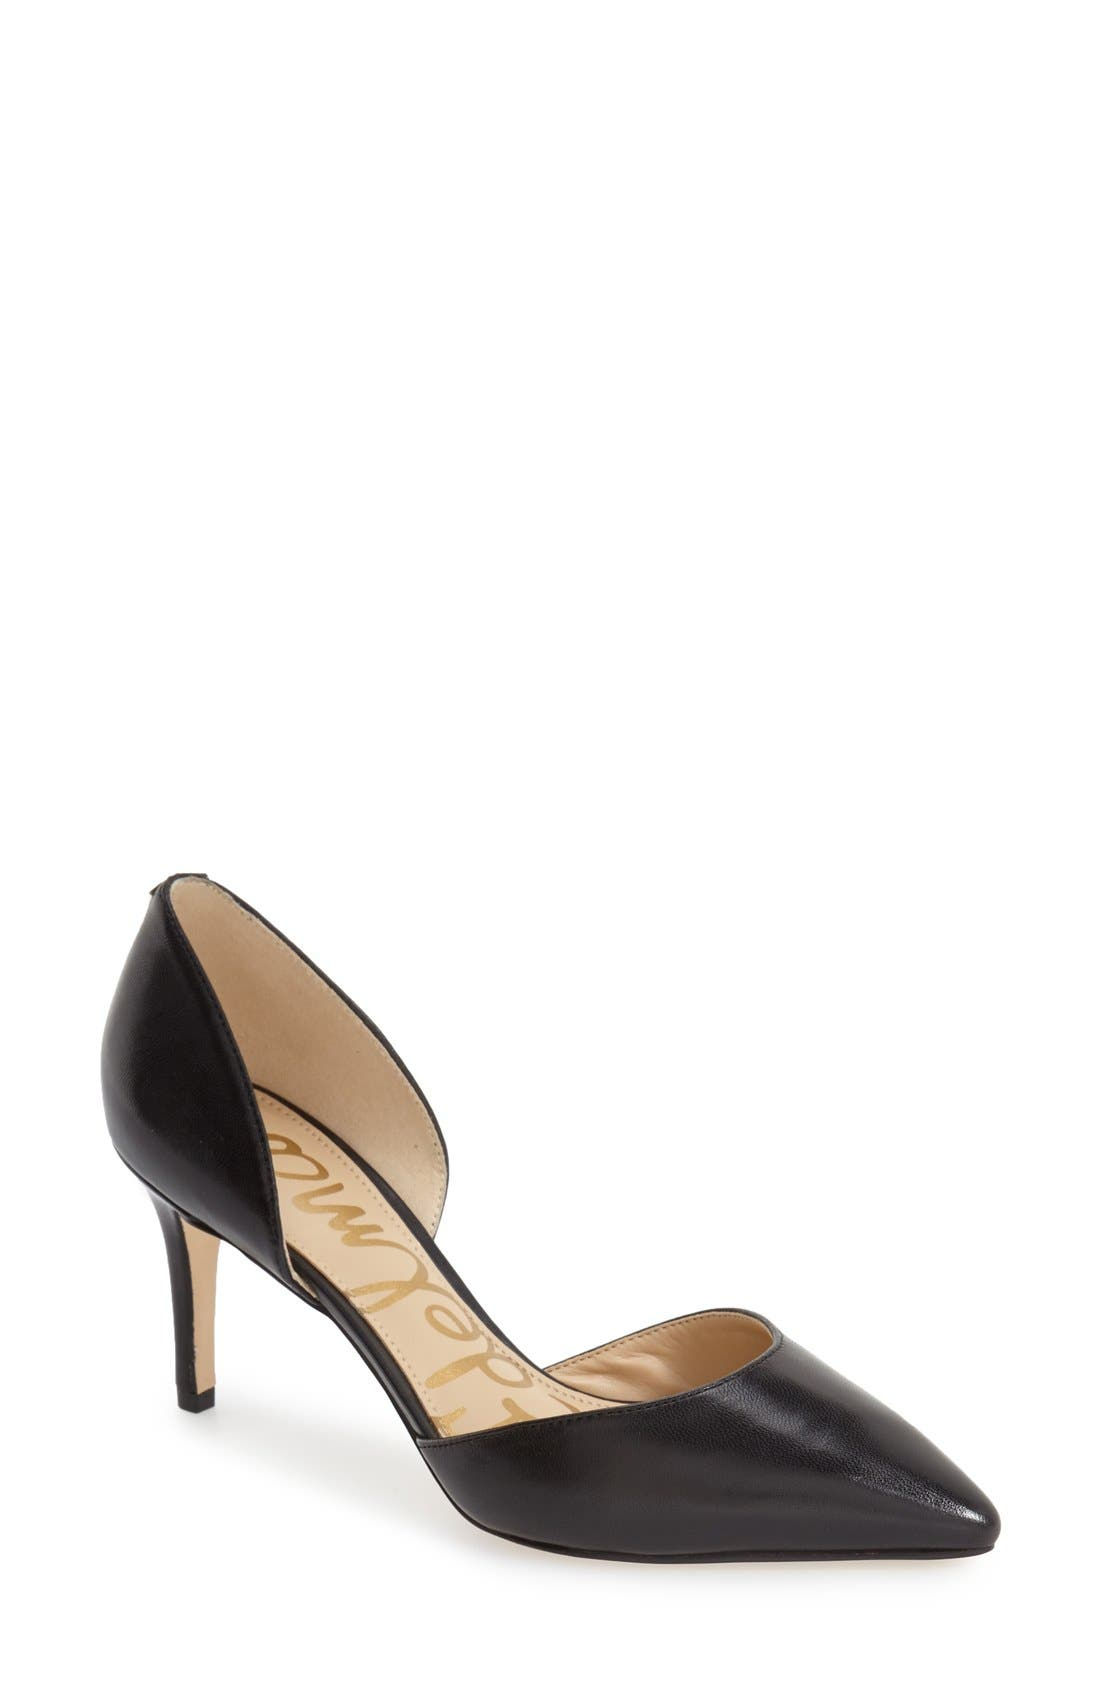 'Telsa' d'Orsay Pointy Toe Pump,                             Main thumbnail 5, color,